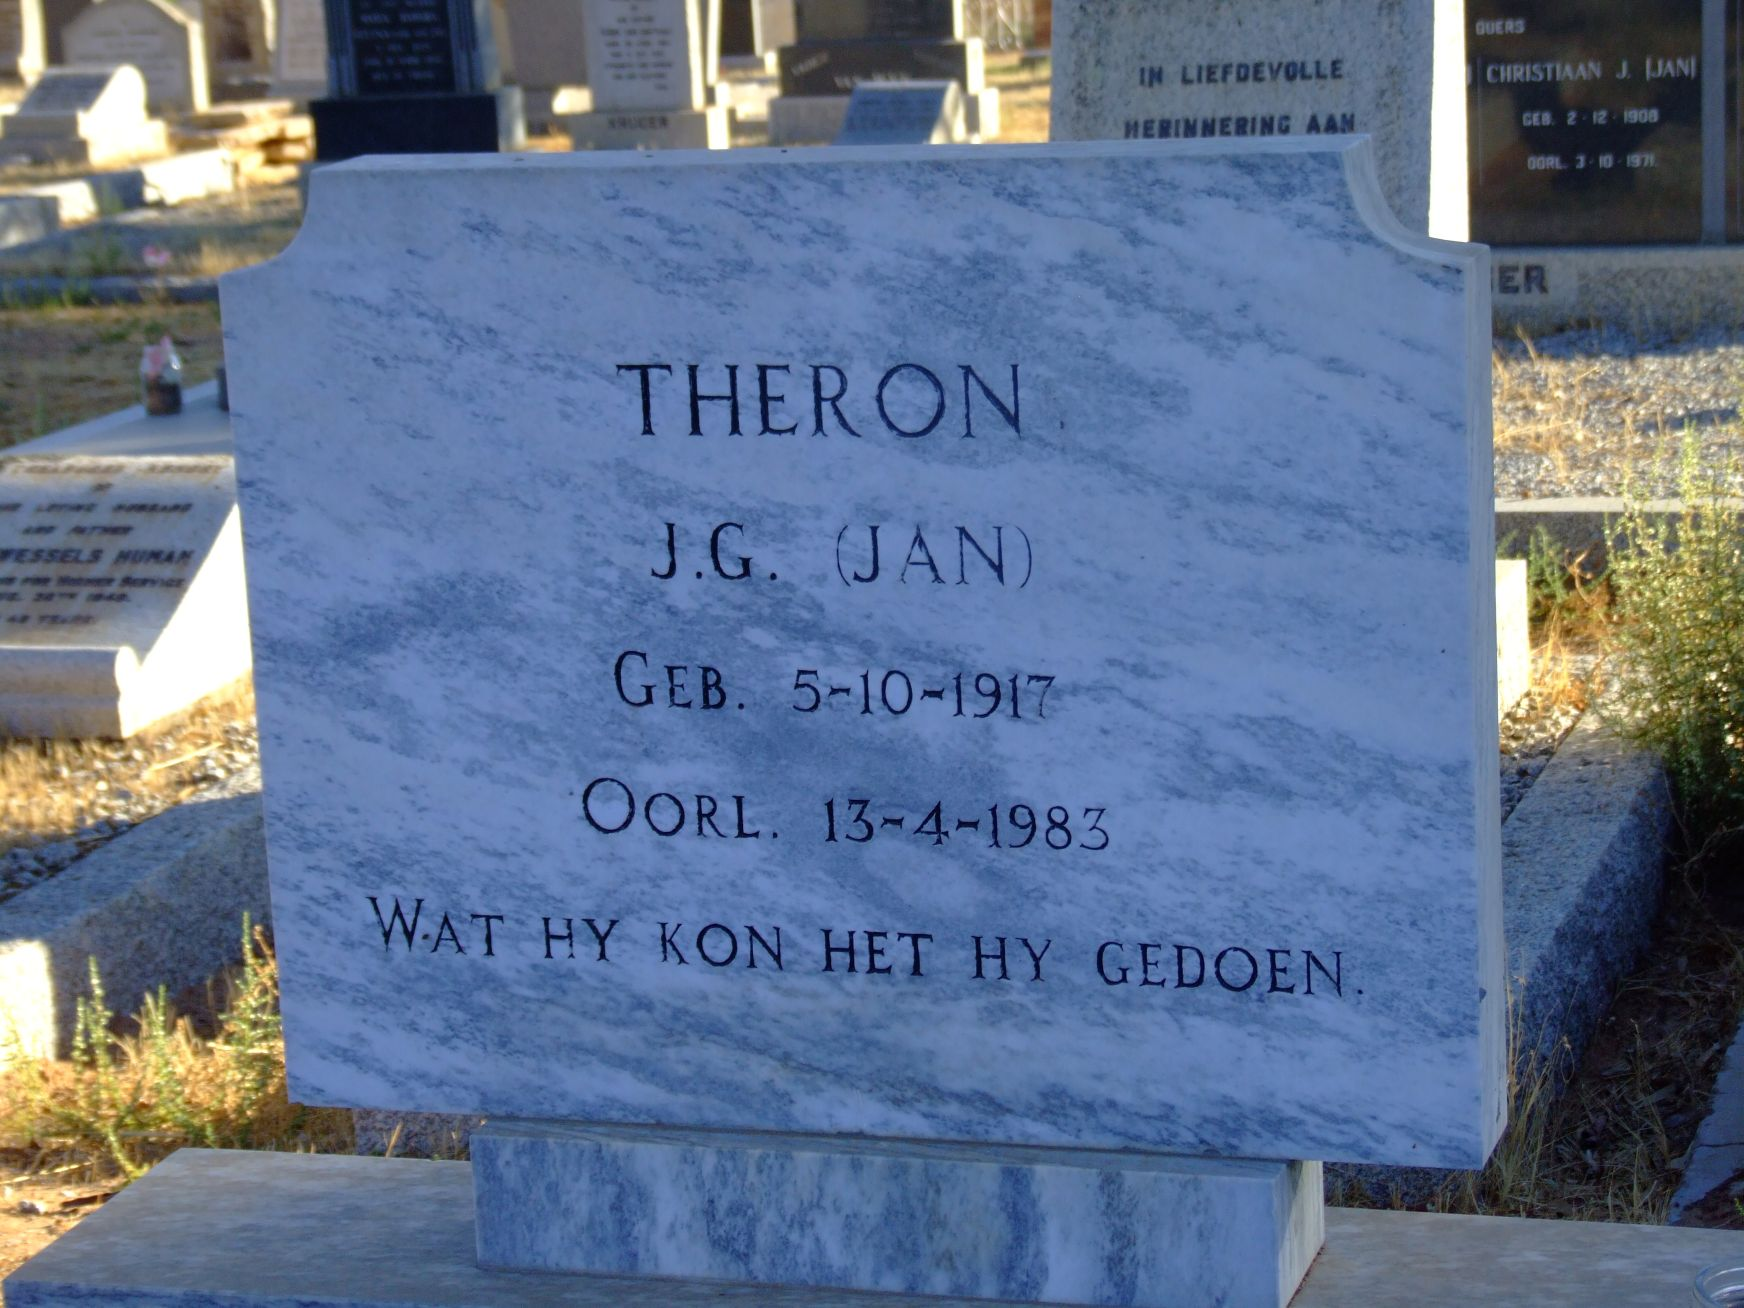 Theron, J.G. Jan